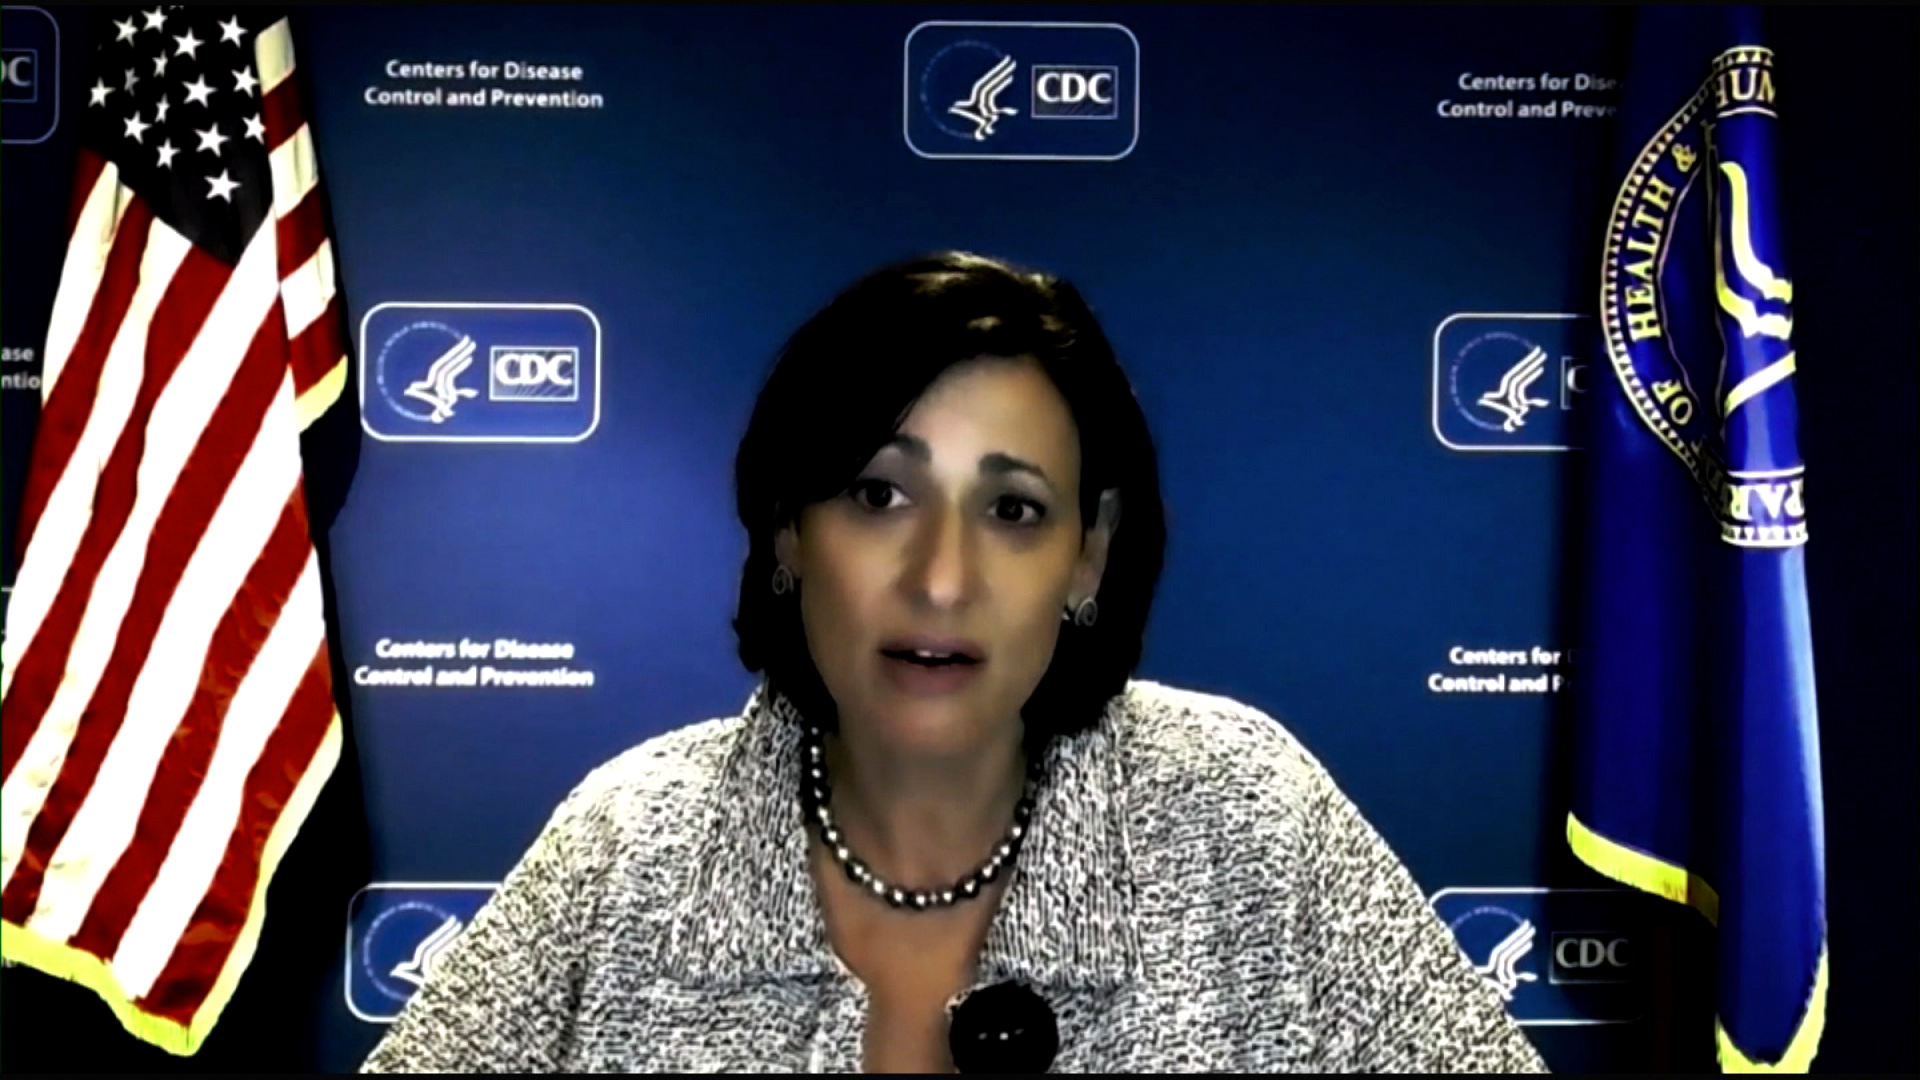 CDC Director Dr. Rochelle Walensky speaks during a virtual White House briefing on May 5.